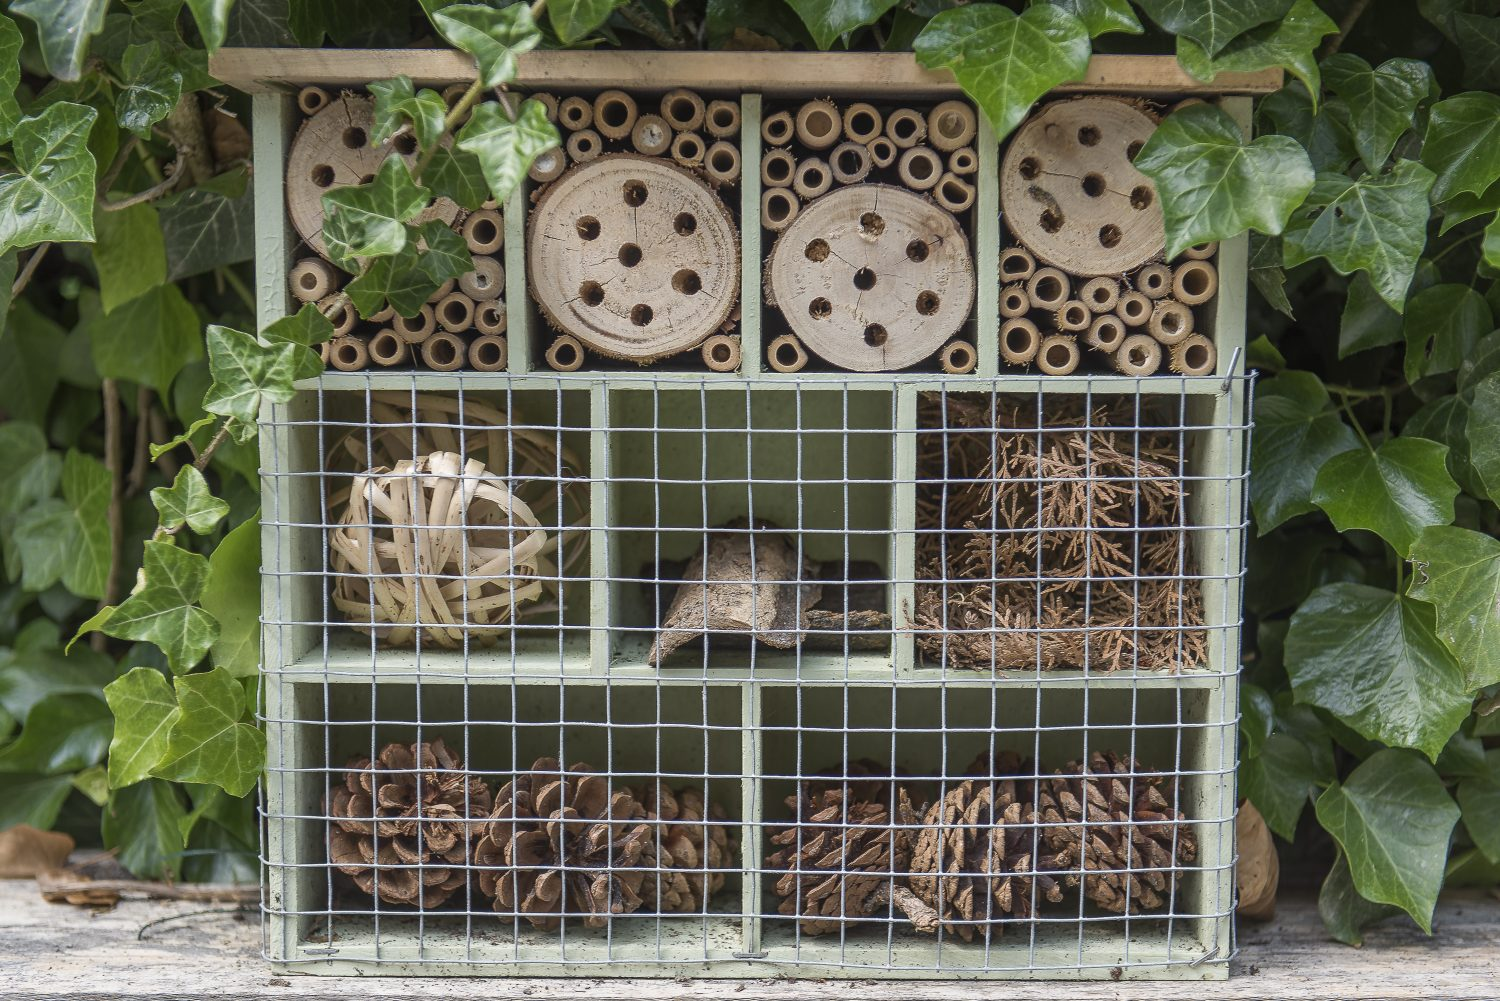 The bug house encourages insect life into the garden